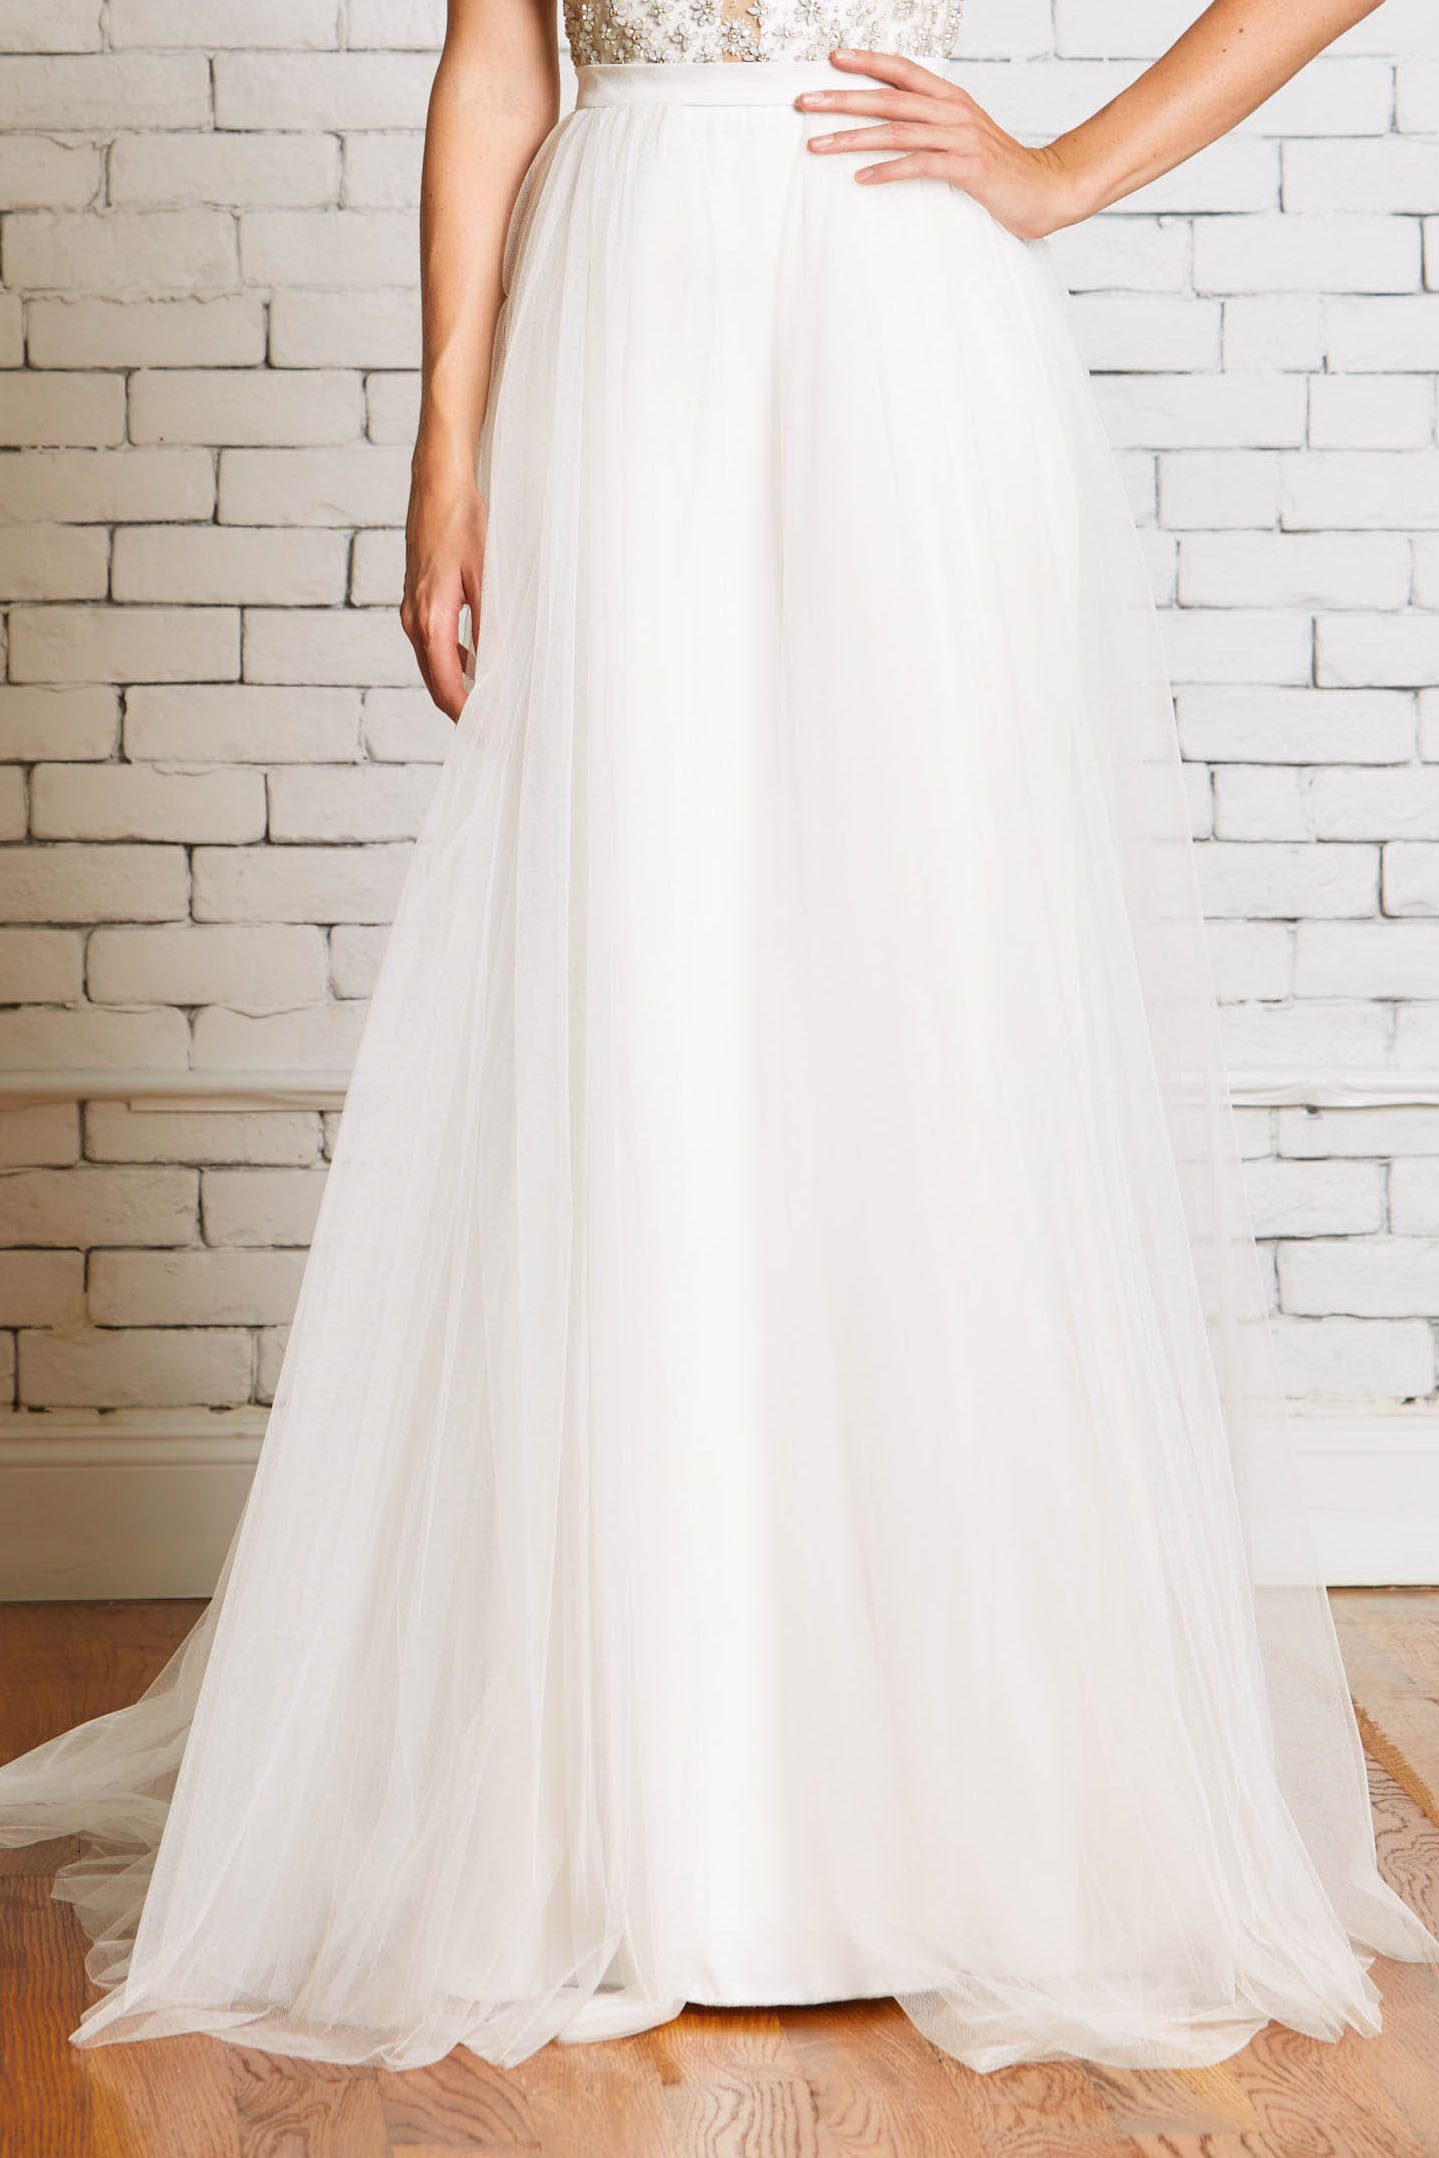 Rebecca_Schoneveld_Millie-Overskirt_front-Wedding_Tulle_Unique_Separates.jpg